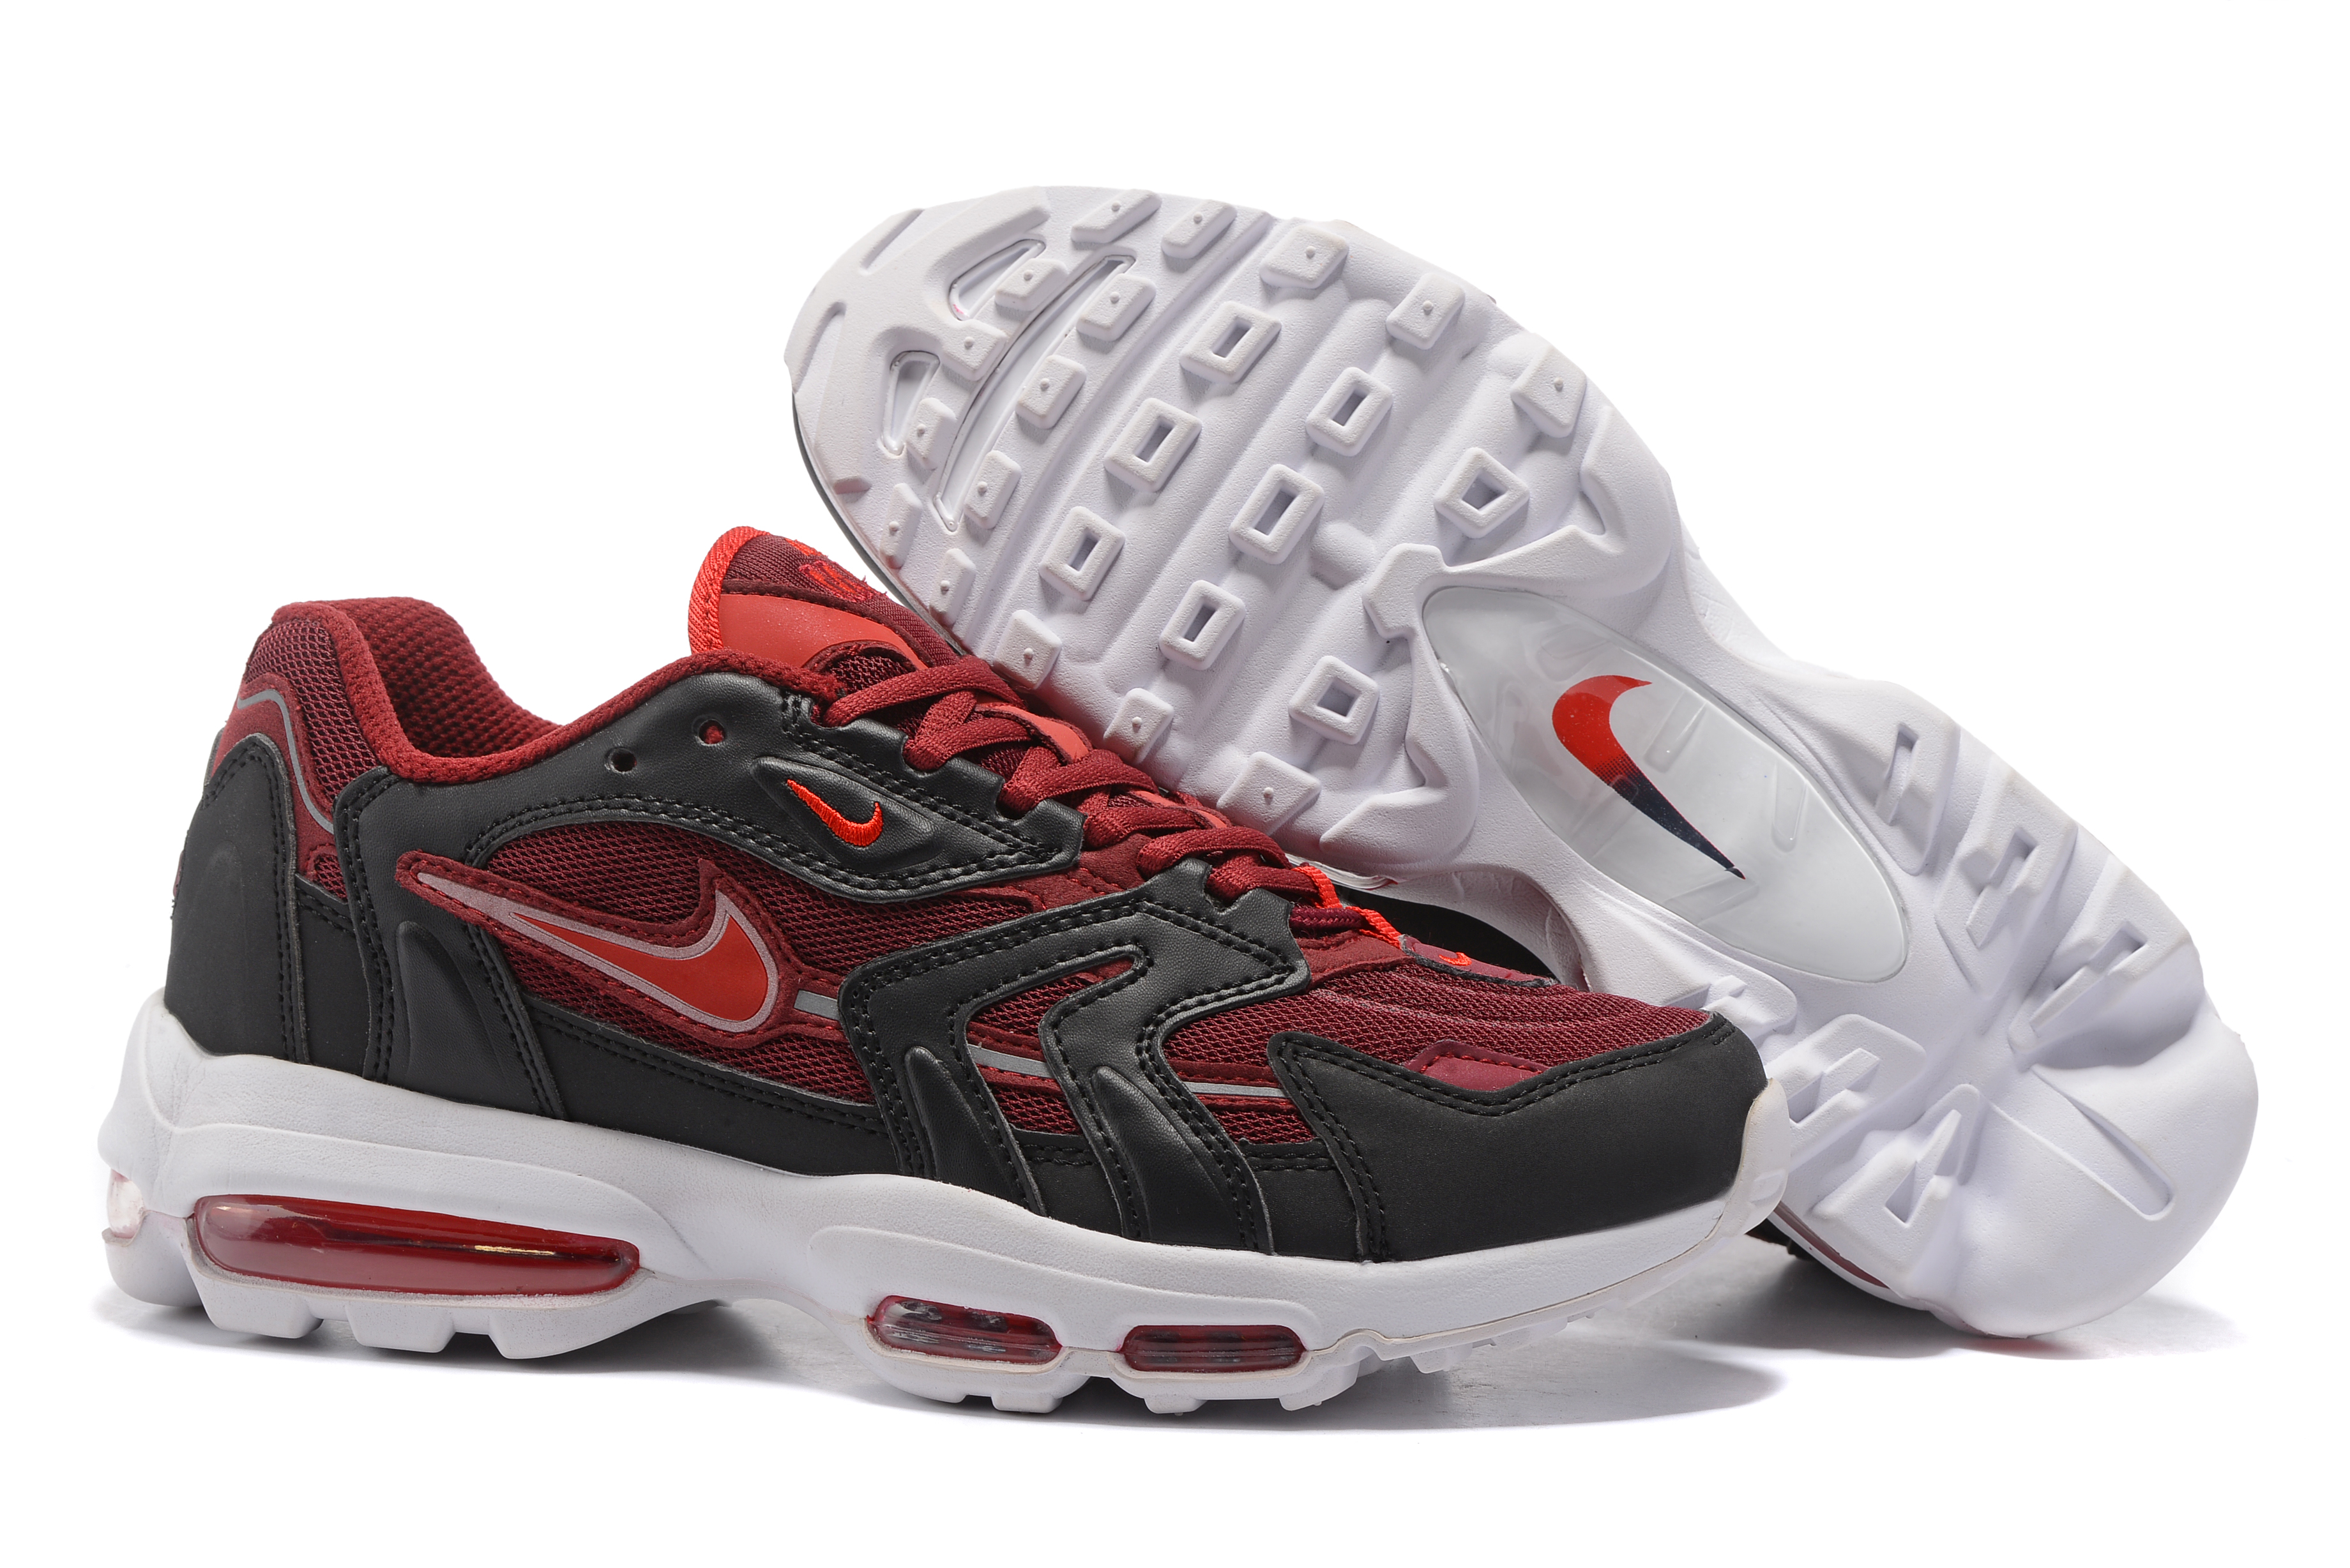 Nike Air Max 96 Wine Red Black White Shoes